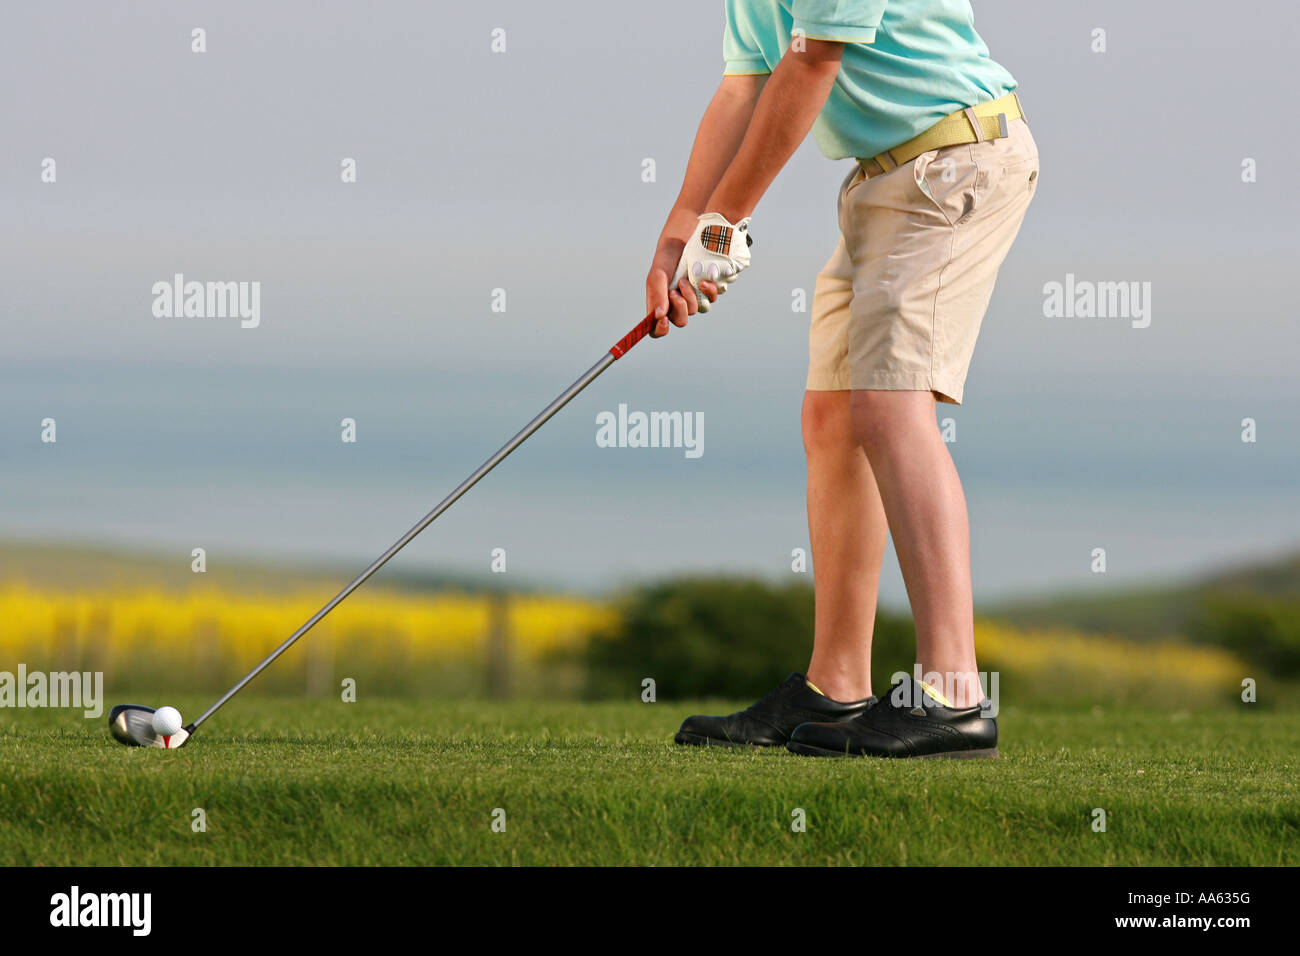 A young golfer prepares to tee off. - Stock Image